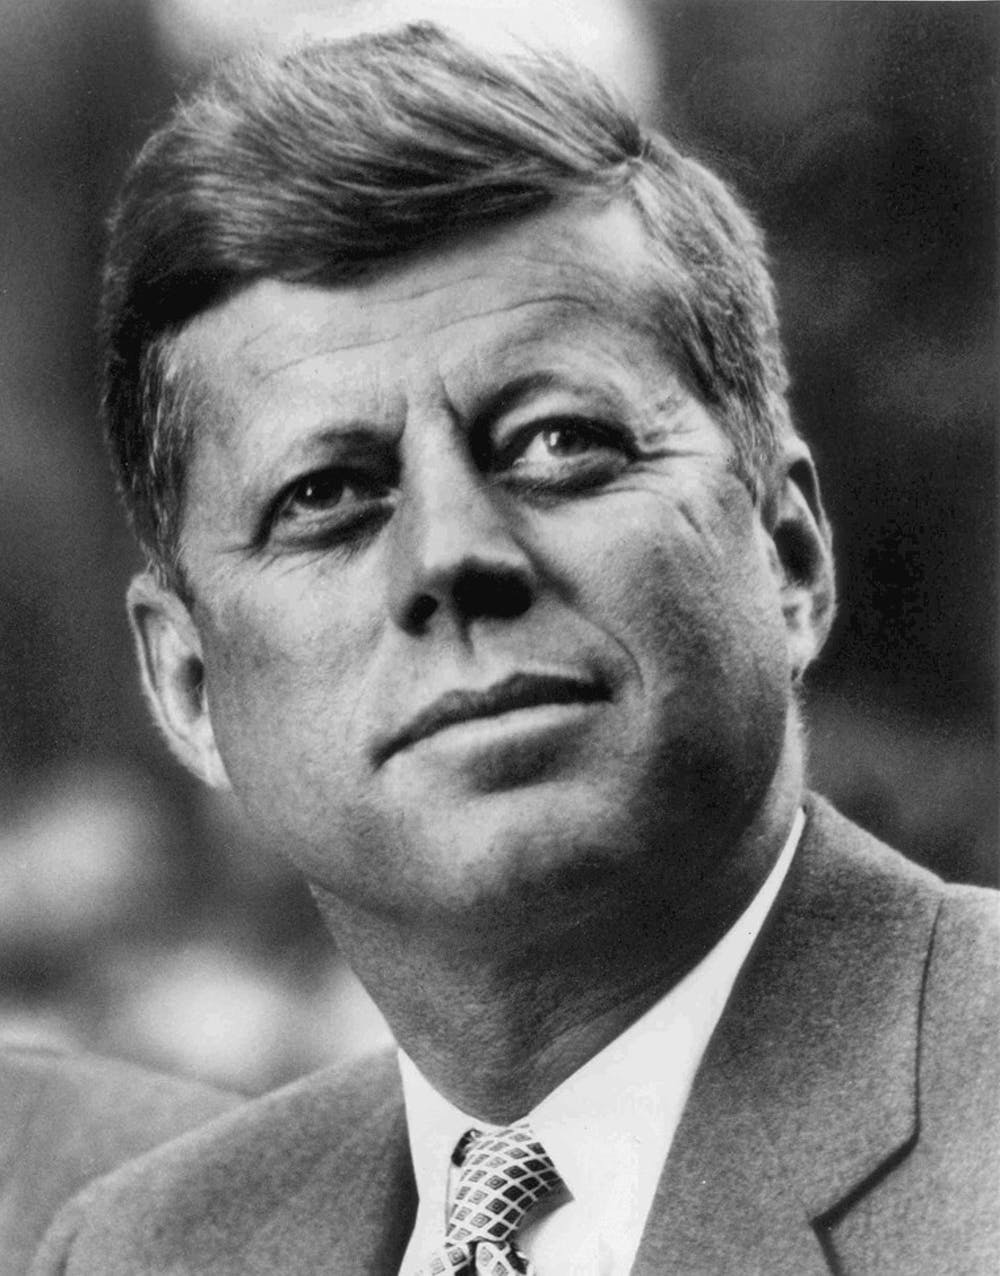 john-f-kennedy-white-house-photo-portrait-looking-up